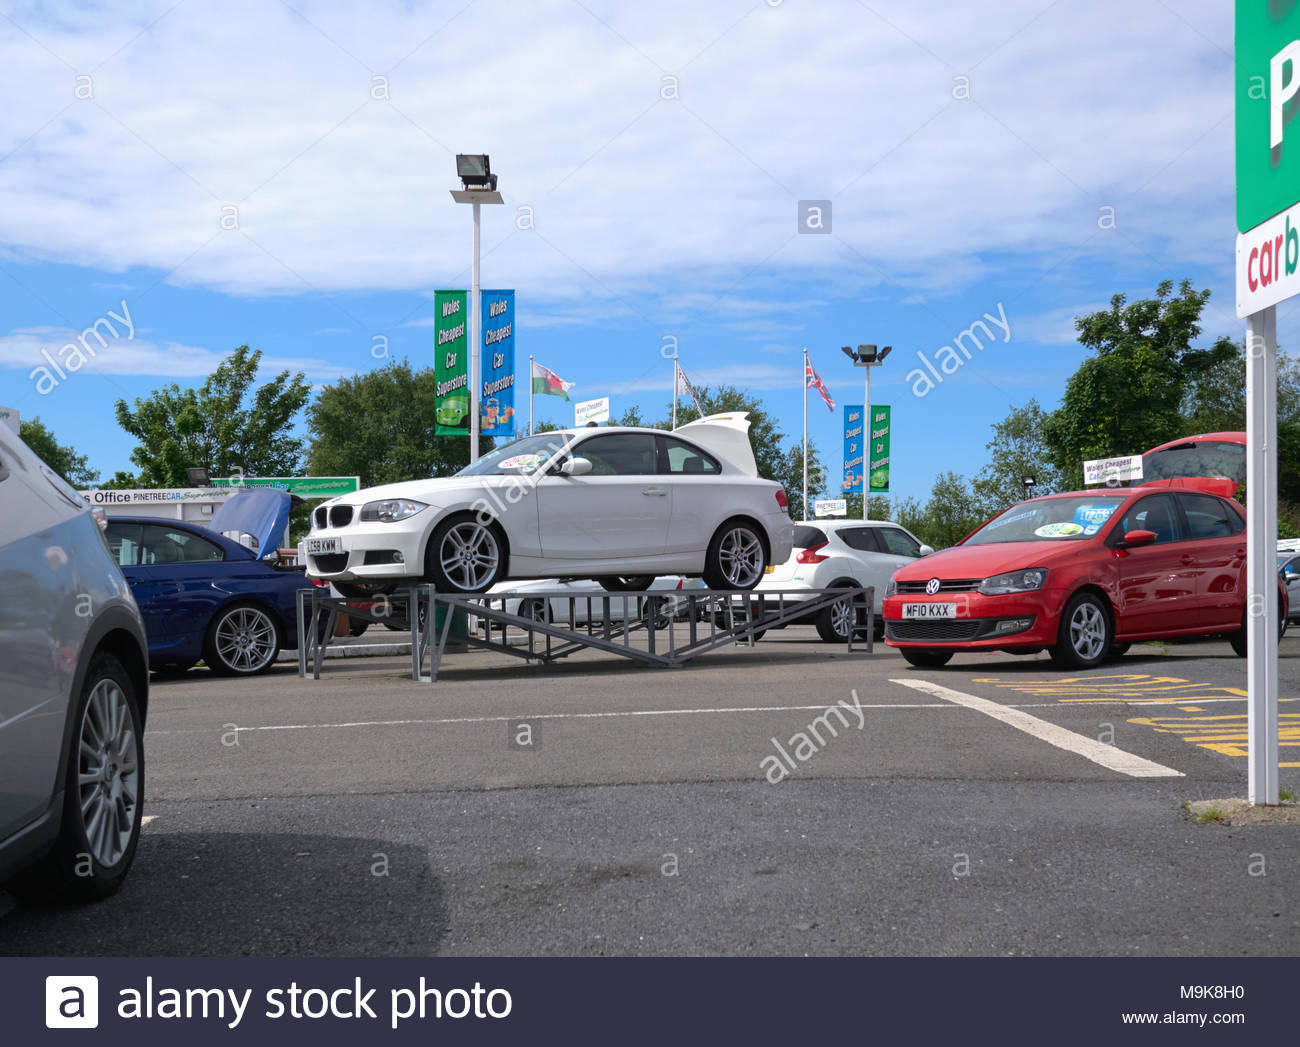 Used Cars For Sale Stock Photos & Used Cars For Sale Stock Images ...